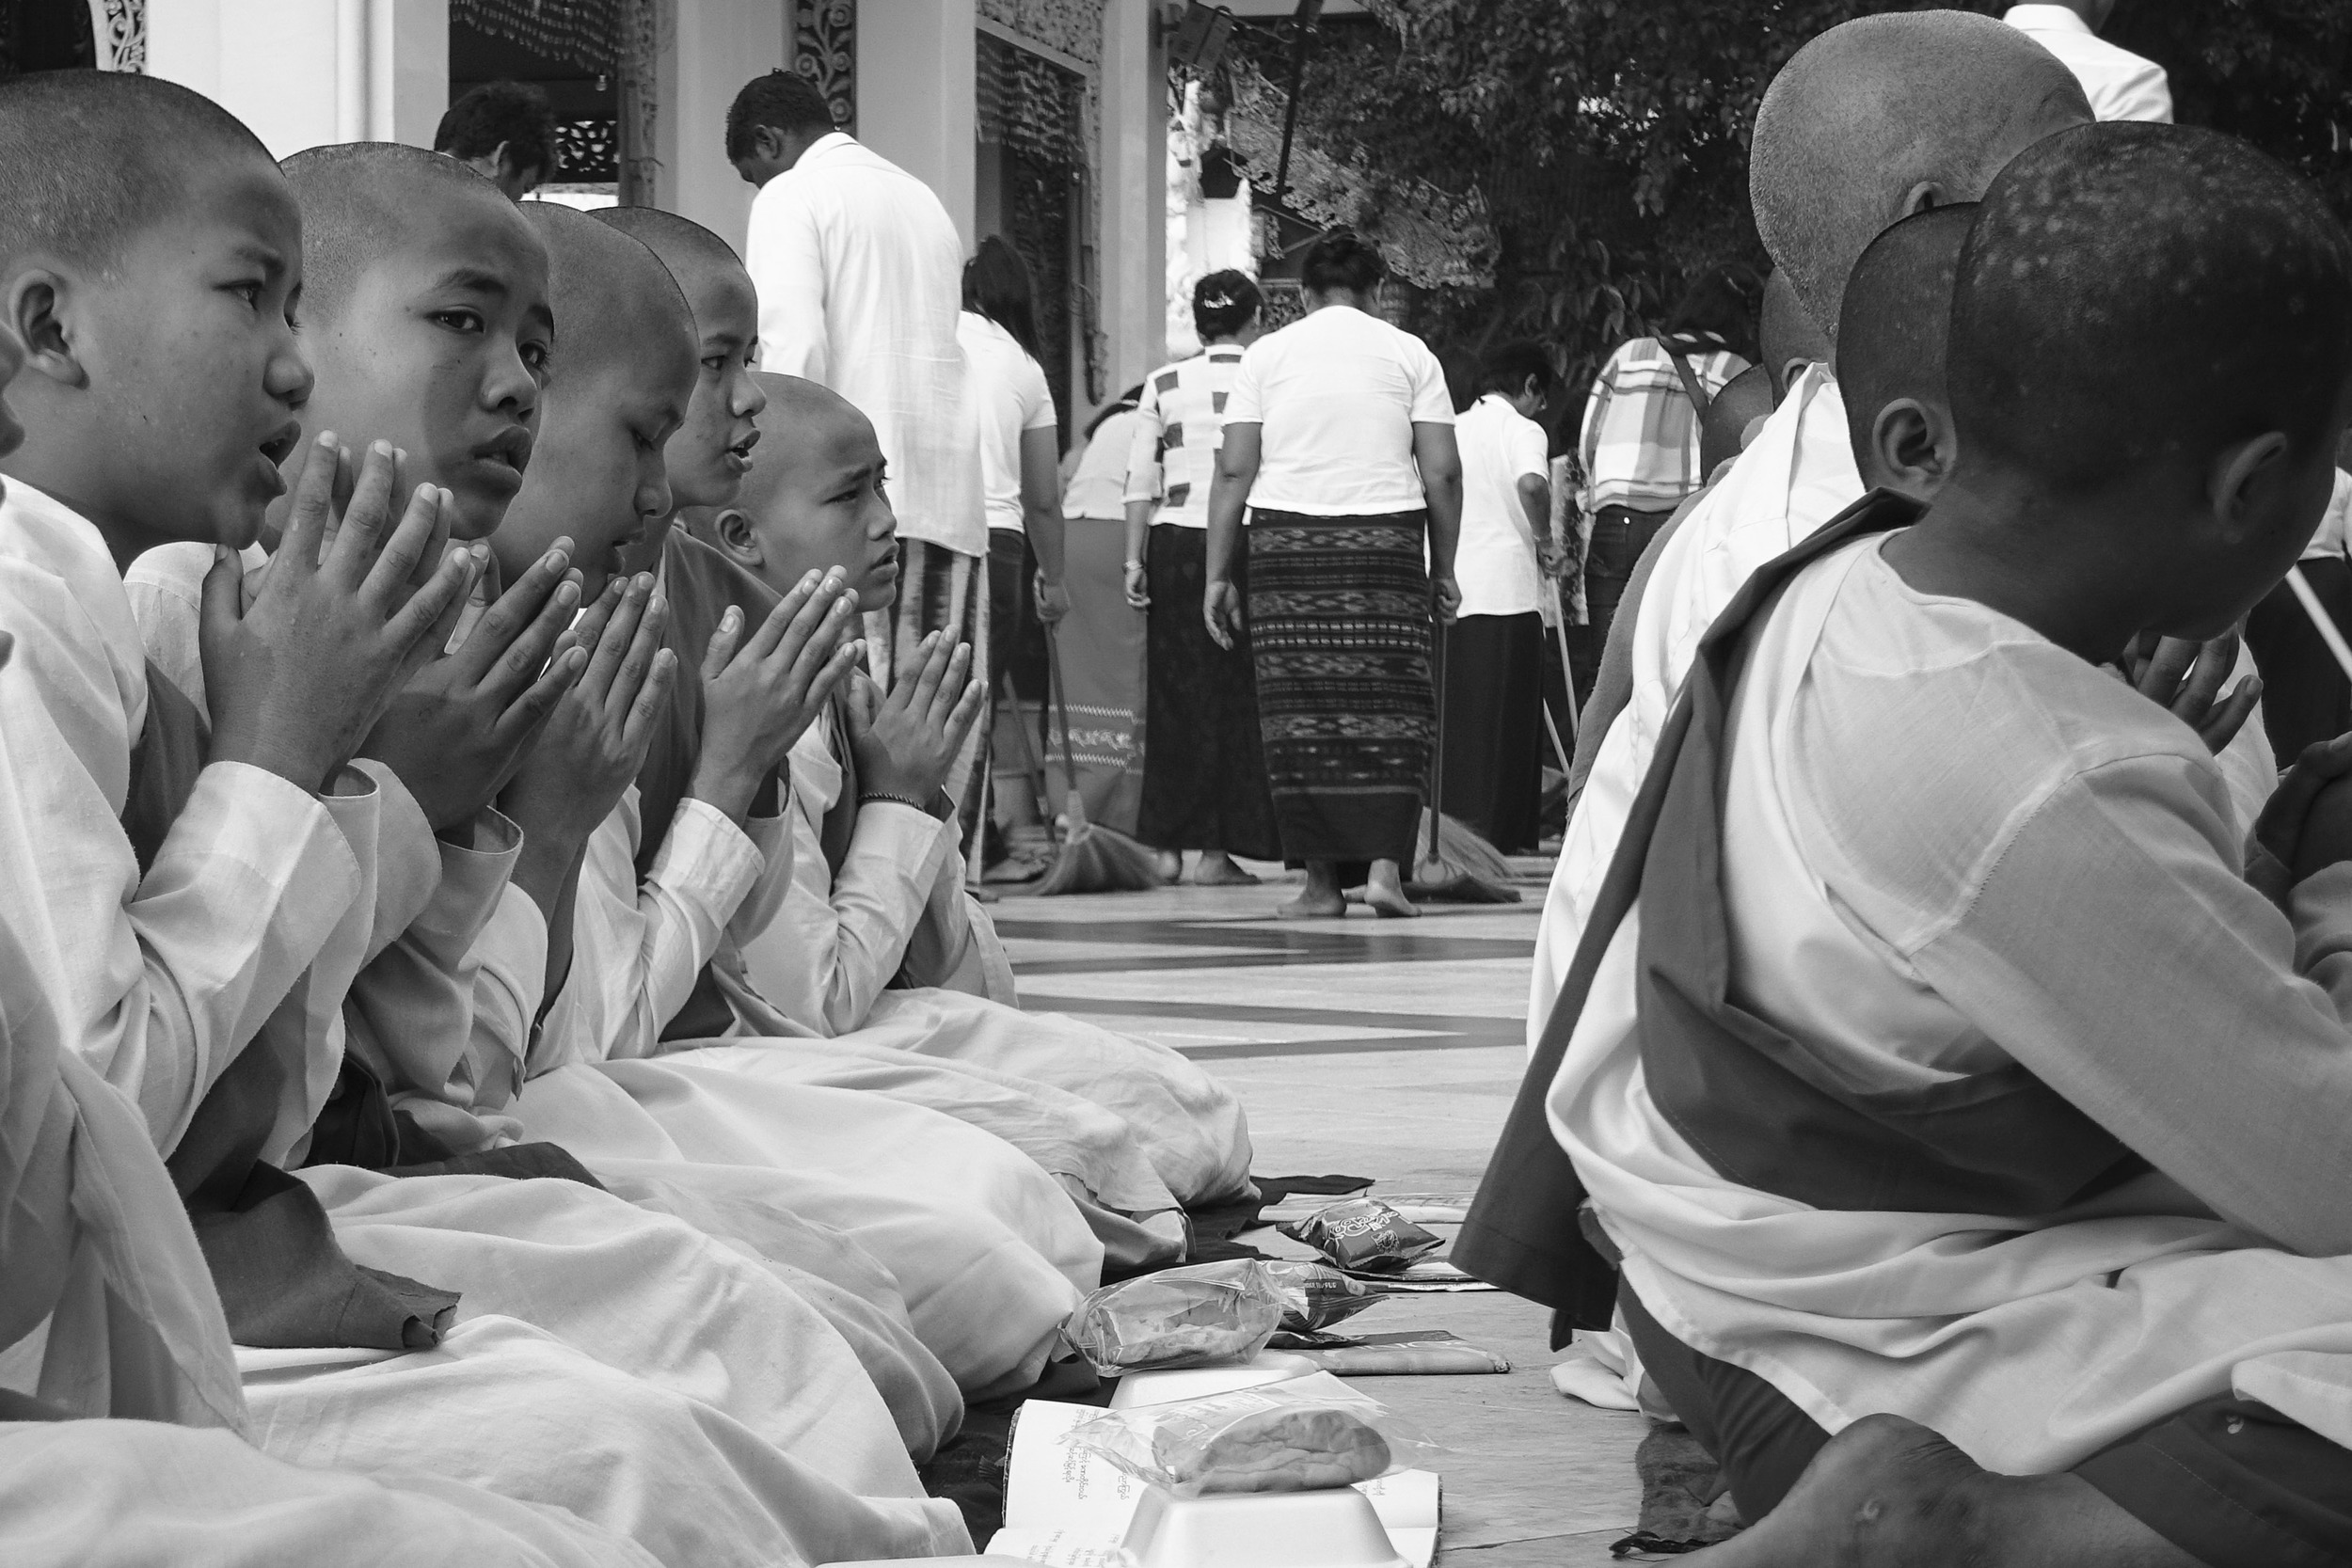 Young monks move around the central pagoda structure, singing hymns and collecting alms.